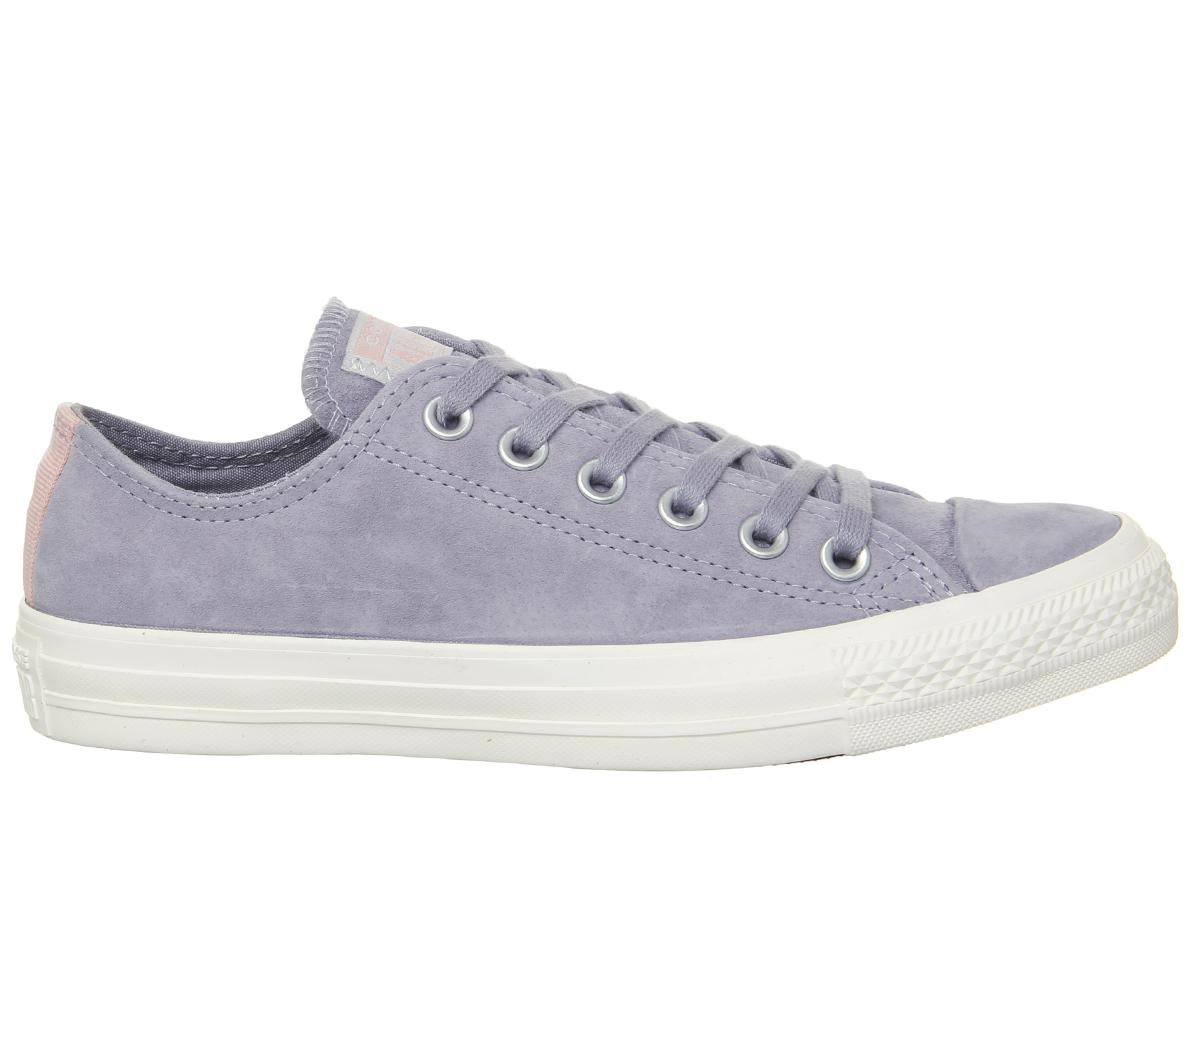 85620f308883 Converse - Multicolor Allstar Low Leather Trainers for Men - Lyst. View  fullscreen